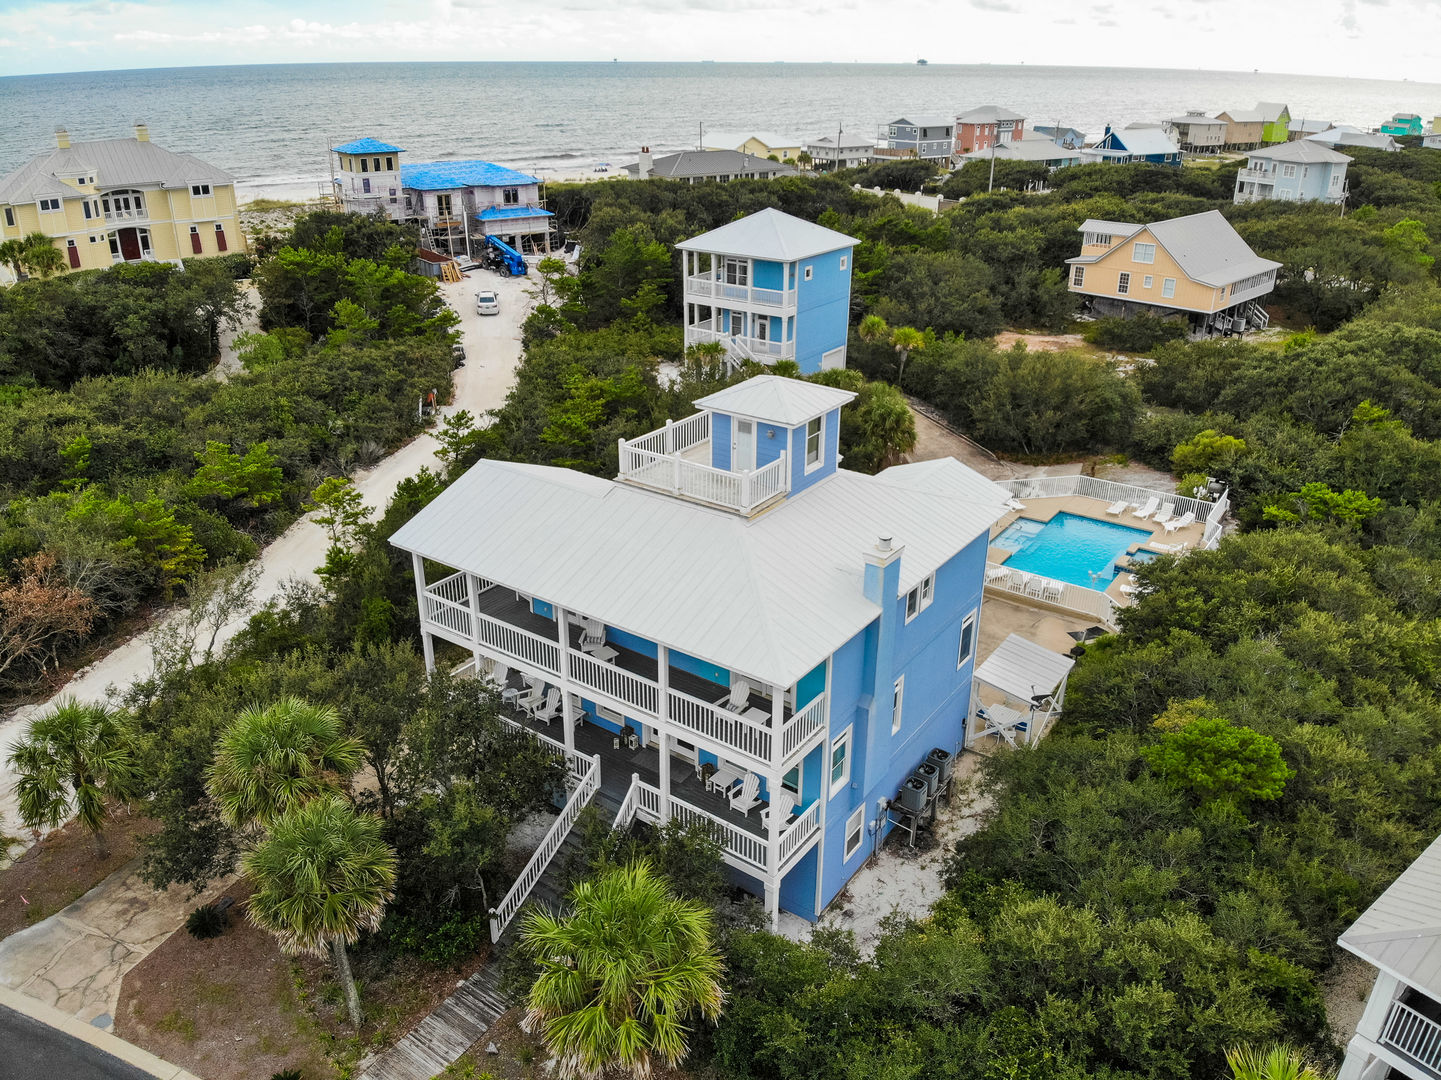 Aerial Picture of our Two Homes, Big Blue and Little Blue.